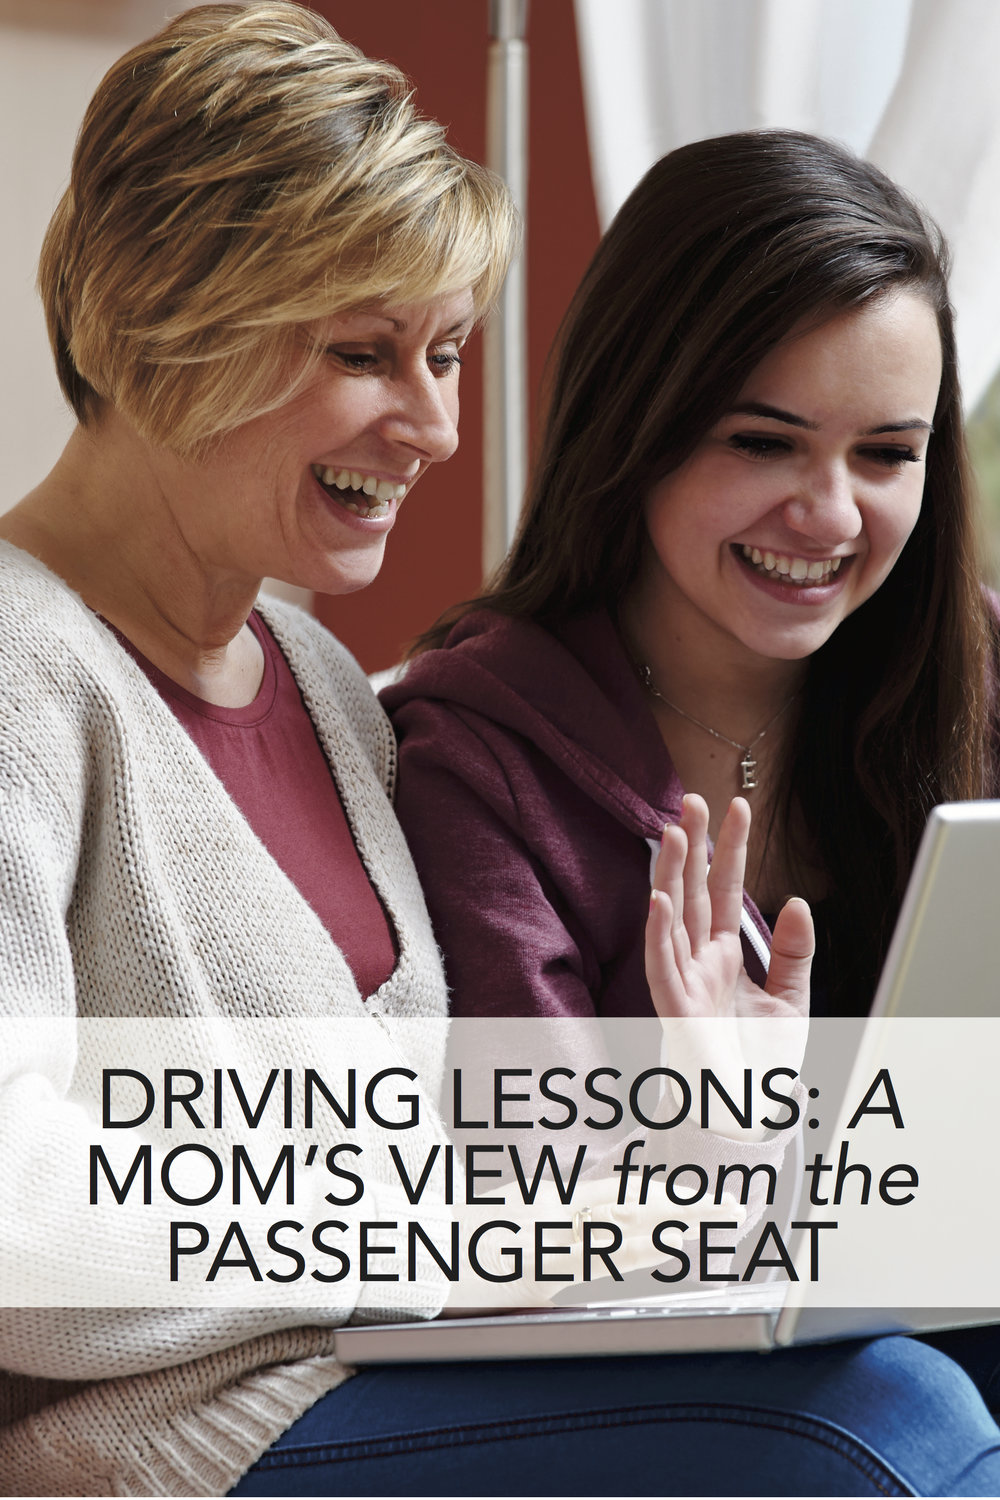 Driving Lessons: A Homeschool Mom's View from the Passenger Seat